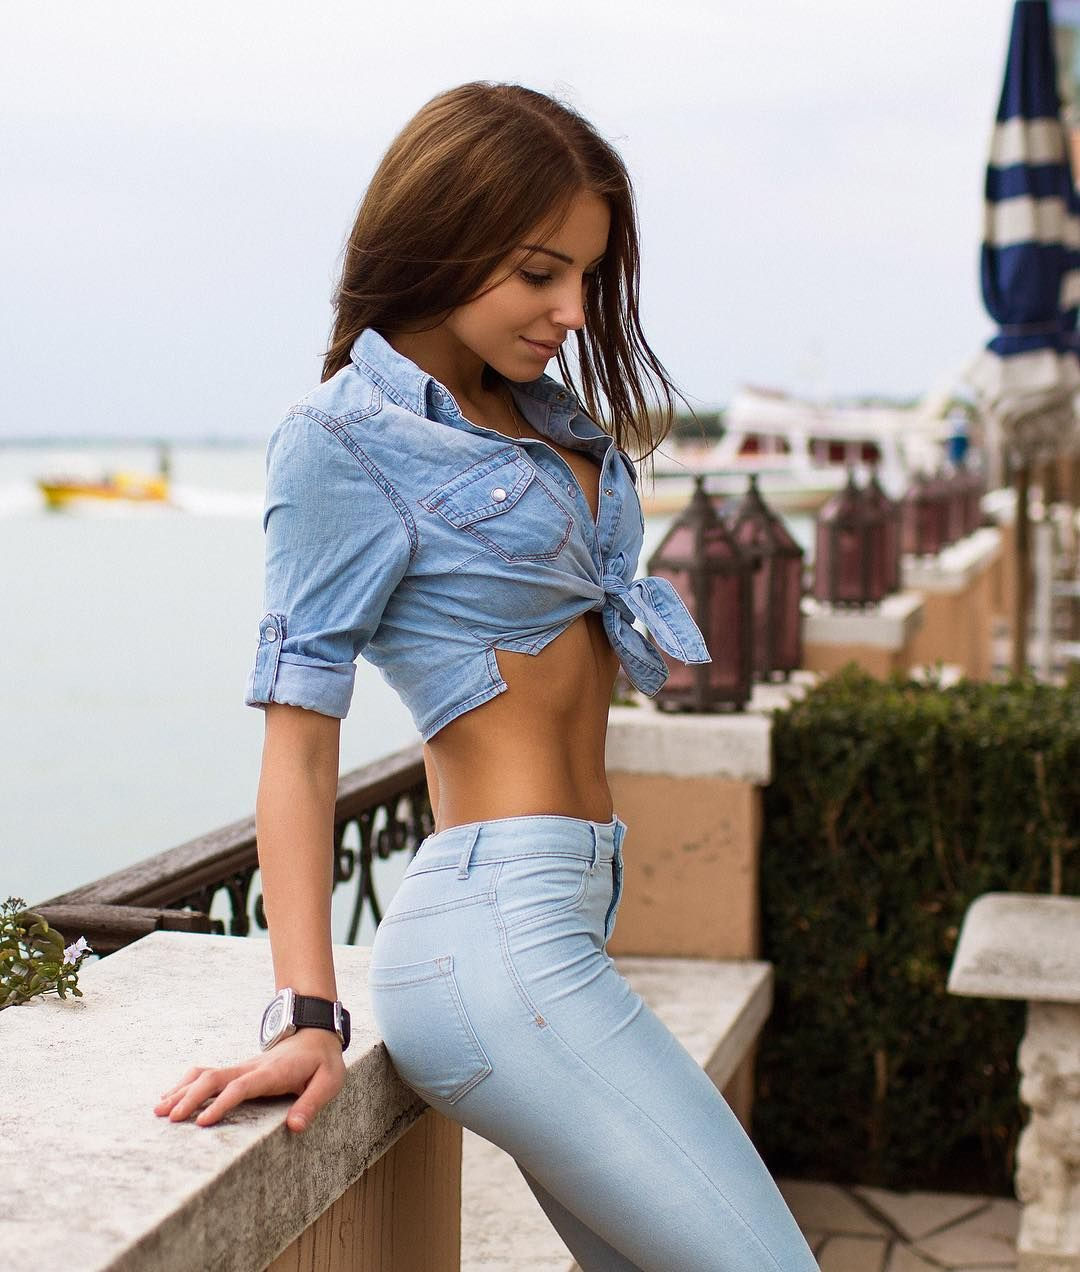 Young Sexy Woman In Blue Jeans Standing Back Looking Sexy By Viktor Solomin